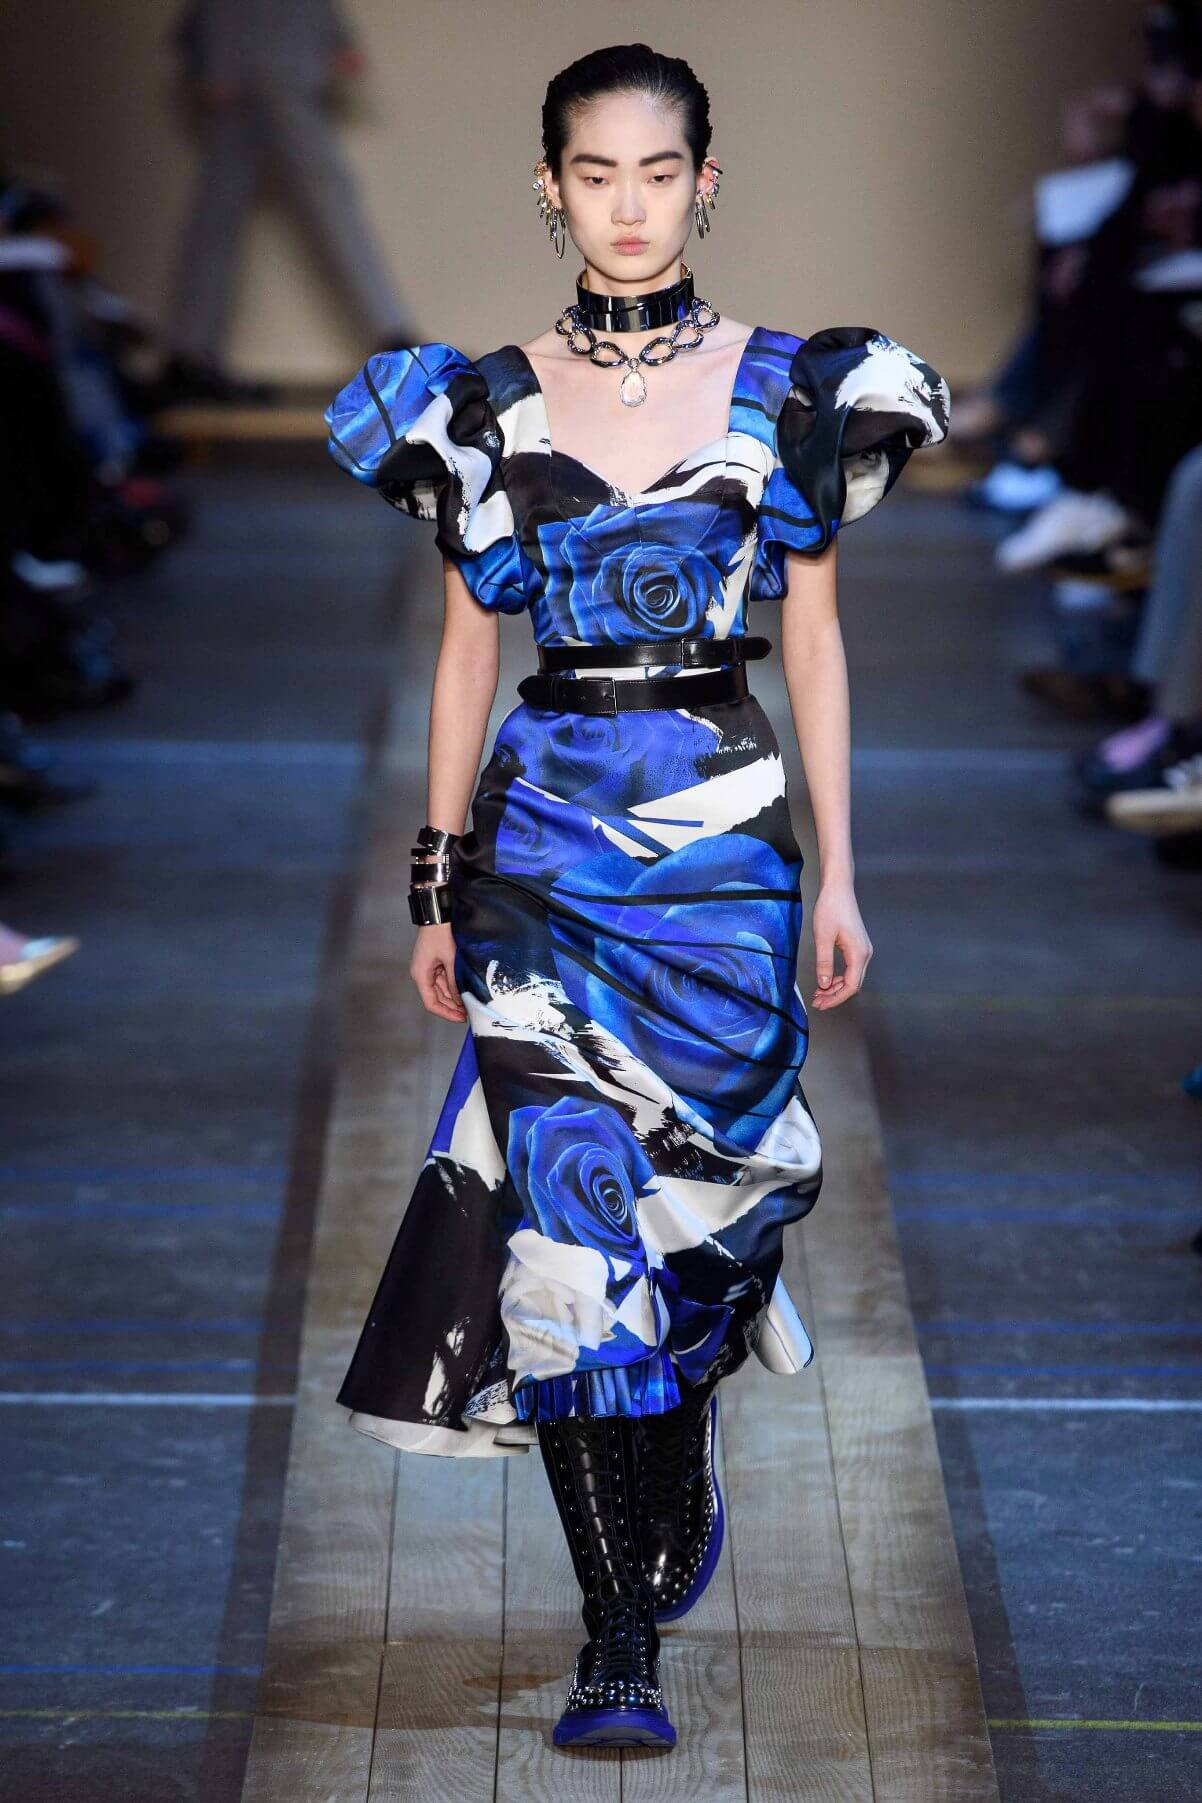 floreale in autunno - Alexander McQueen // Photo Credit Vogue.com